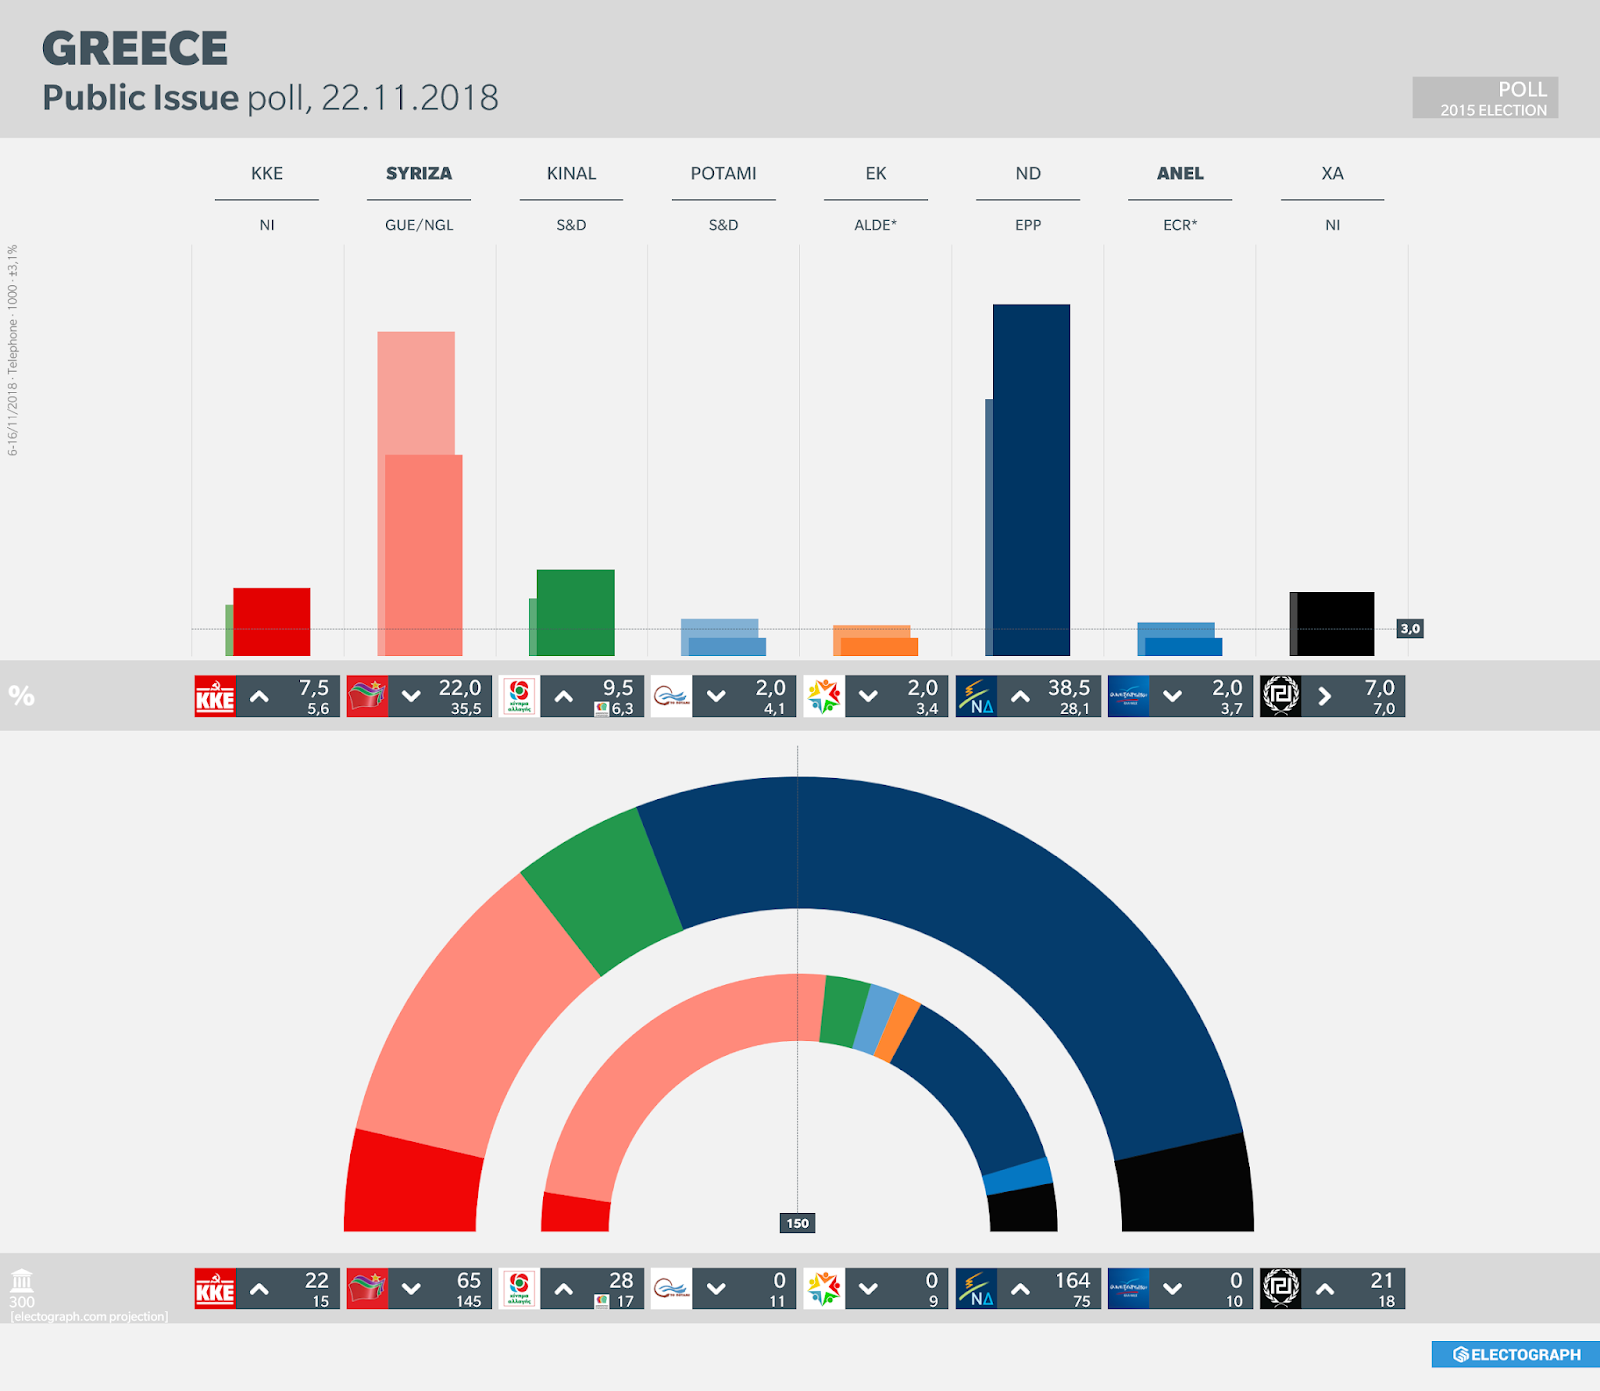 GREECE: Public Issue poll chart, 22 November 2018